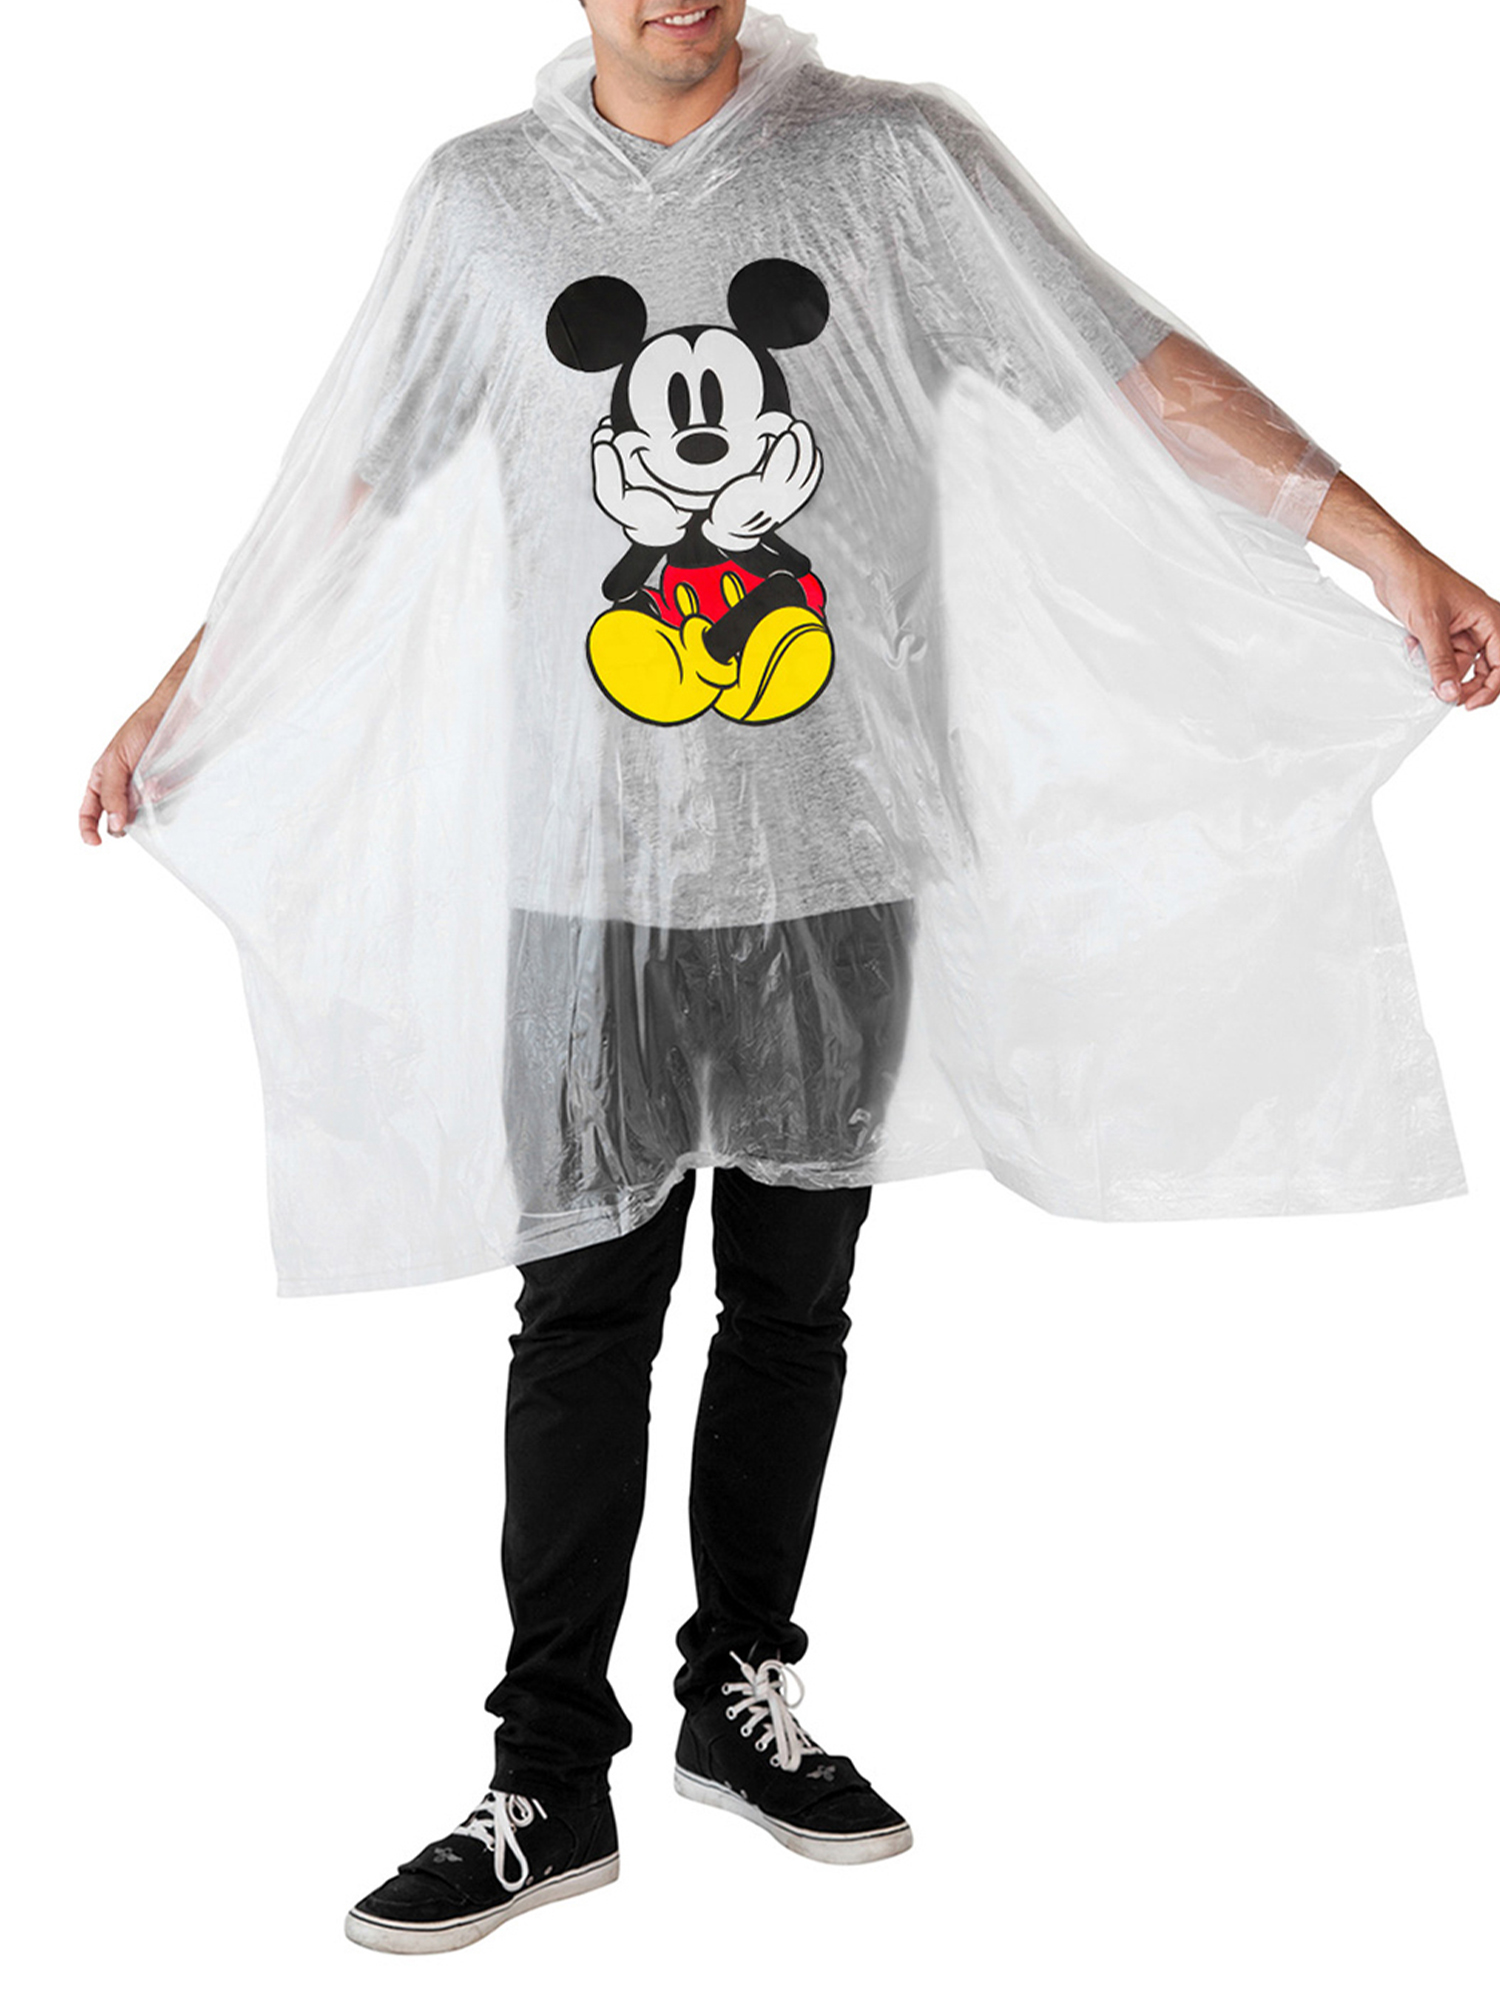 Adult-Kids-Unisex-Mickey-Mouse-Rain-Ponchos-4-PACK-Front-Back-CHOOSE thumbnail 11